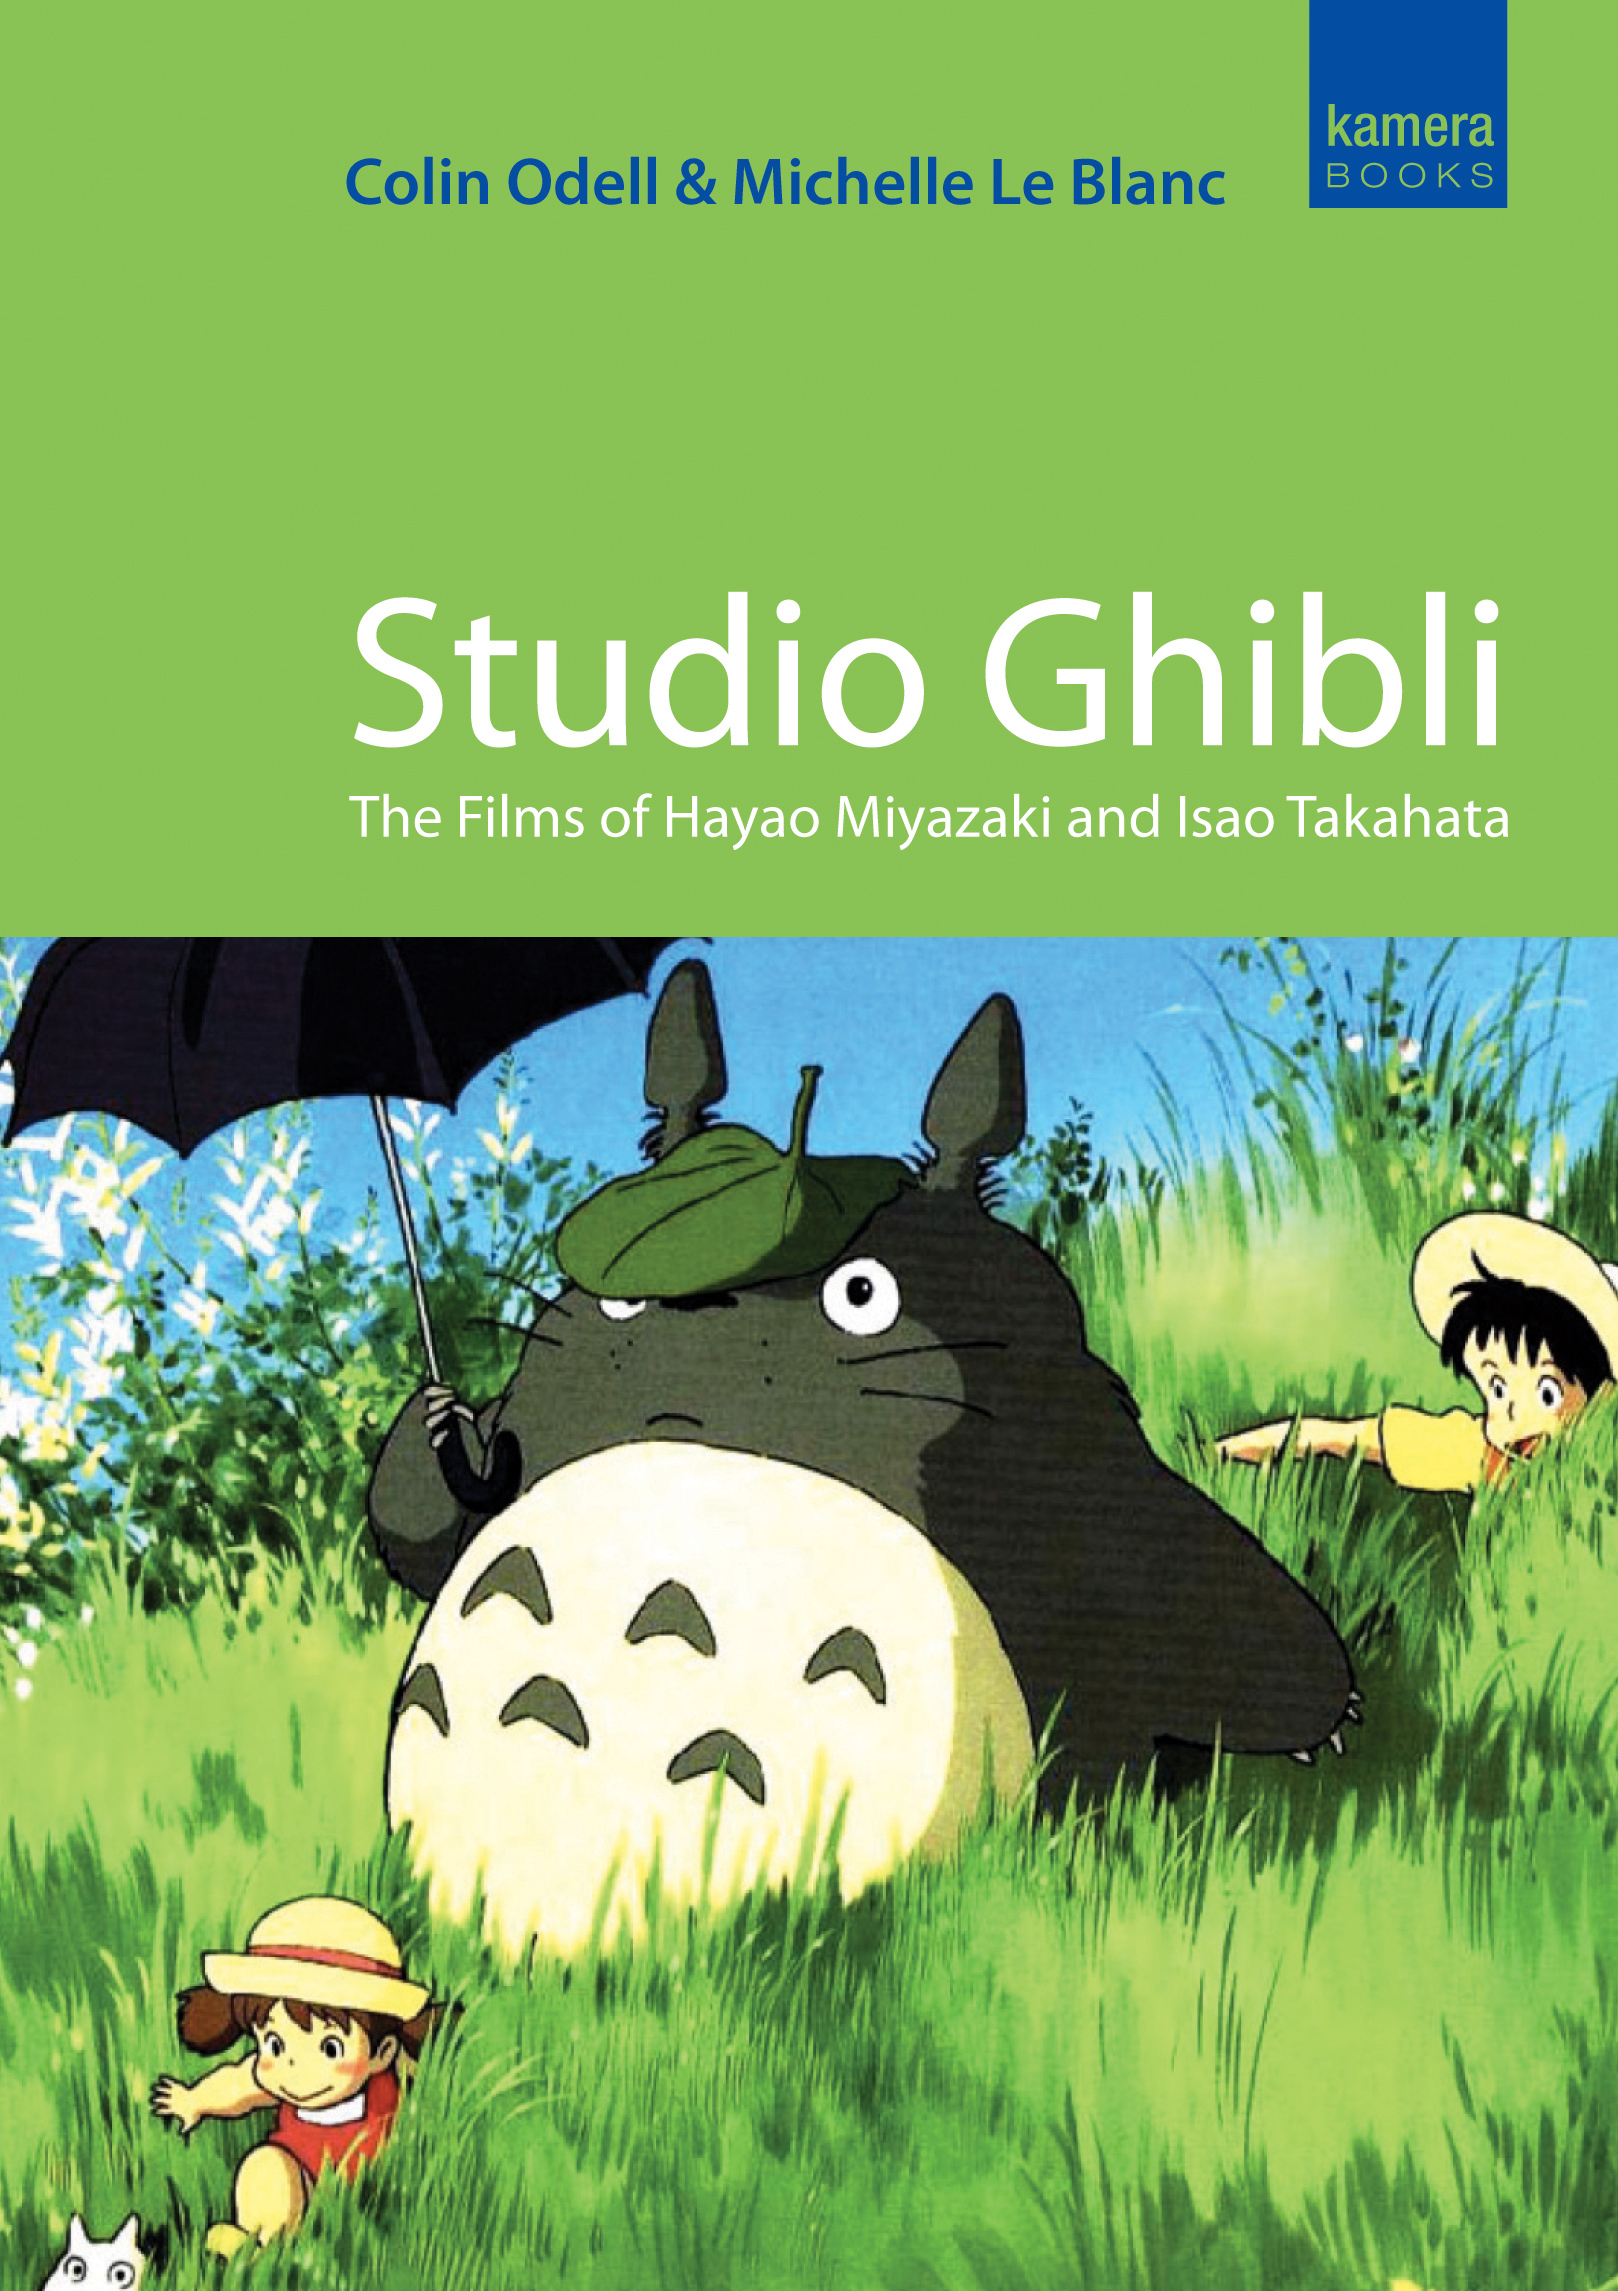 Studio Ghibli The Films of Hayao Miyazaki and Isao Takahata